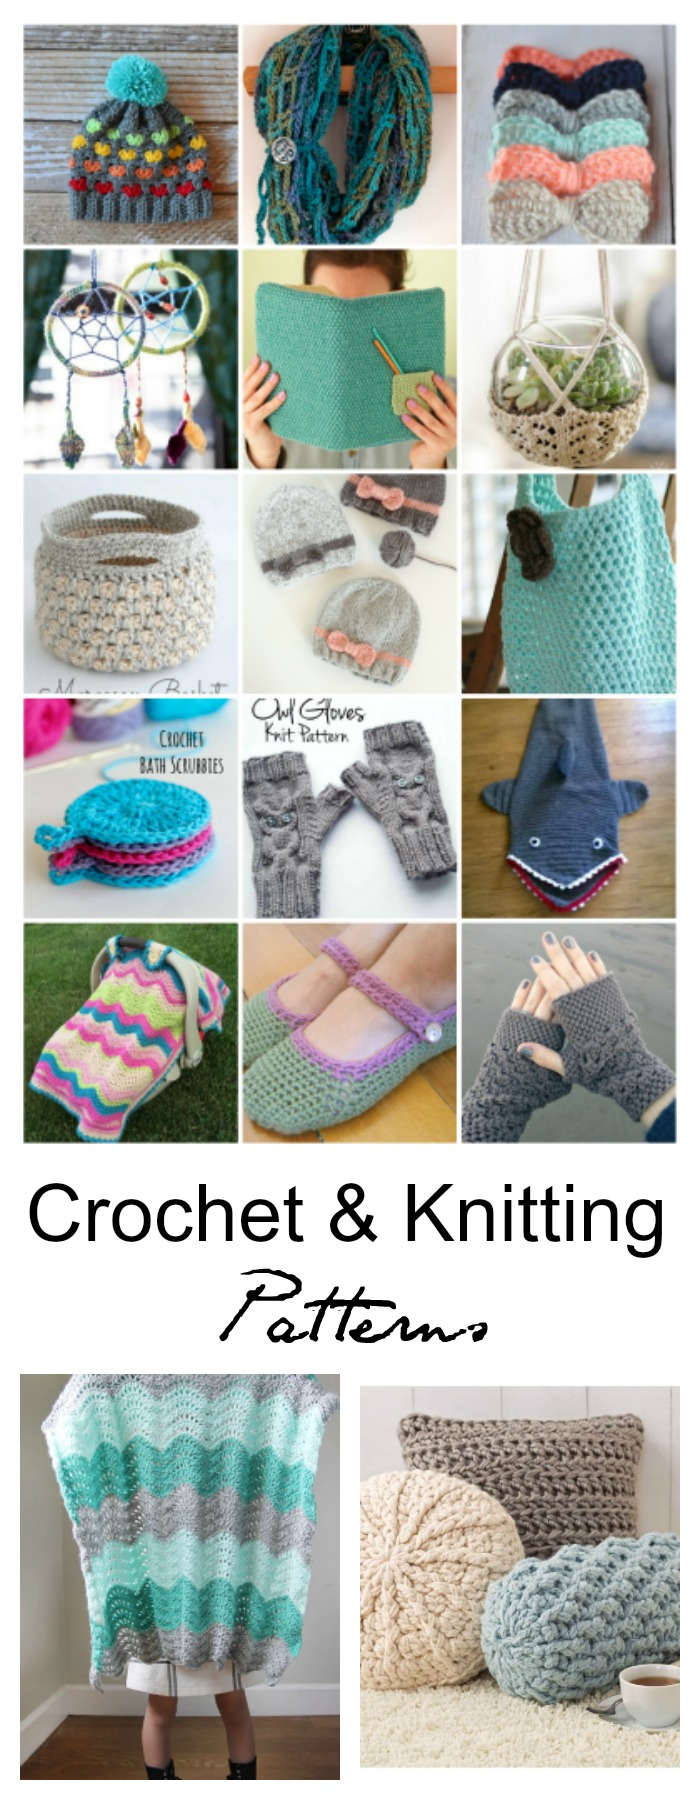 Free-Crochet-Knitting-Patterns-Pin